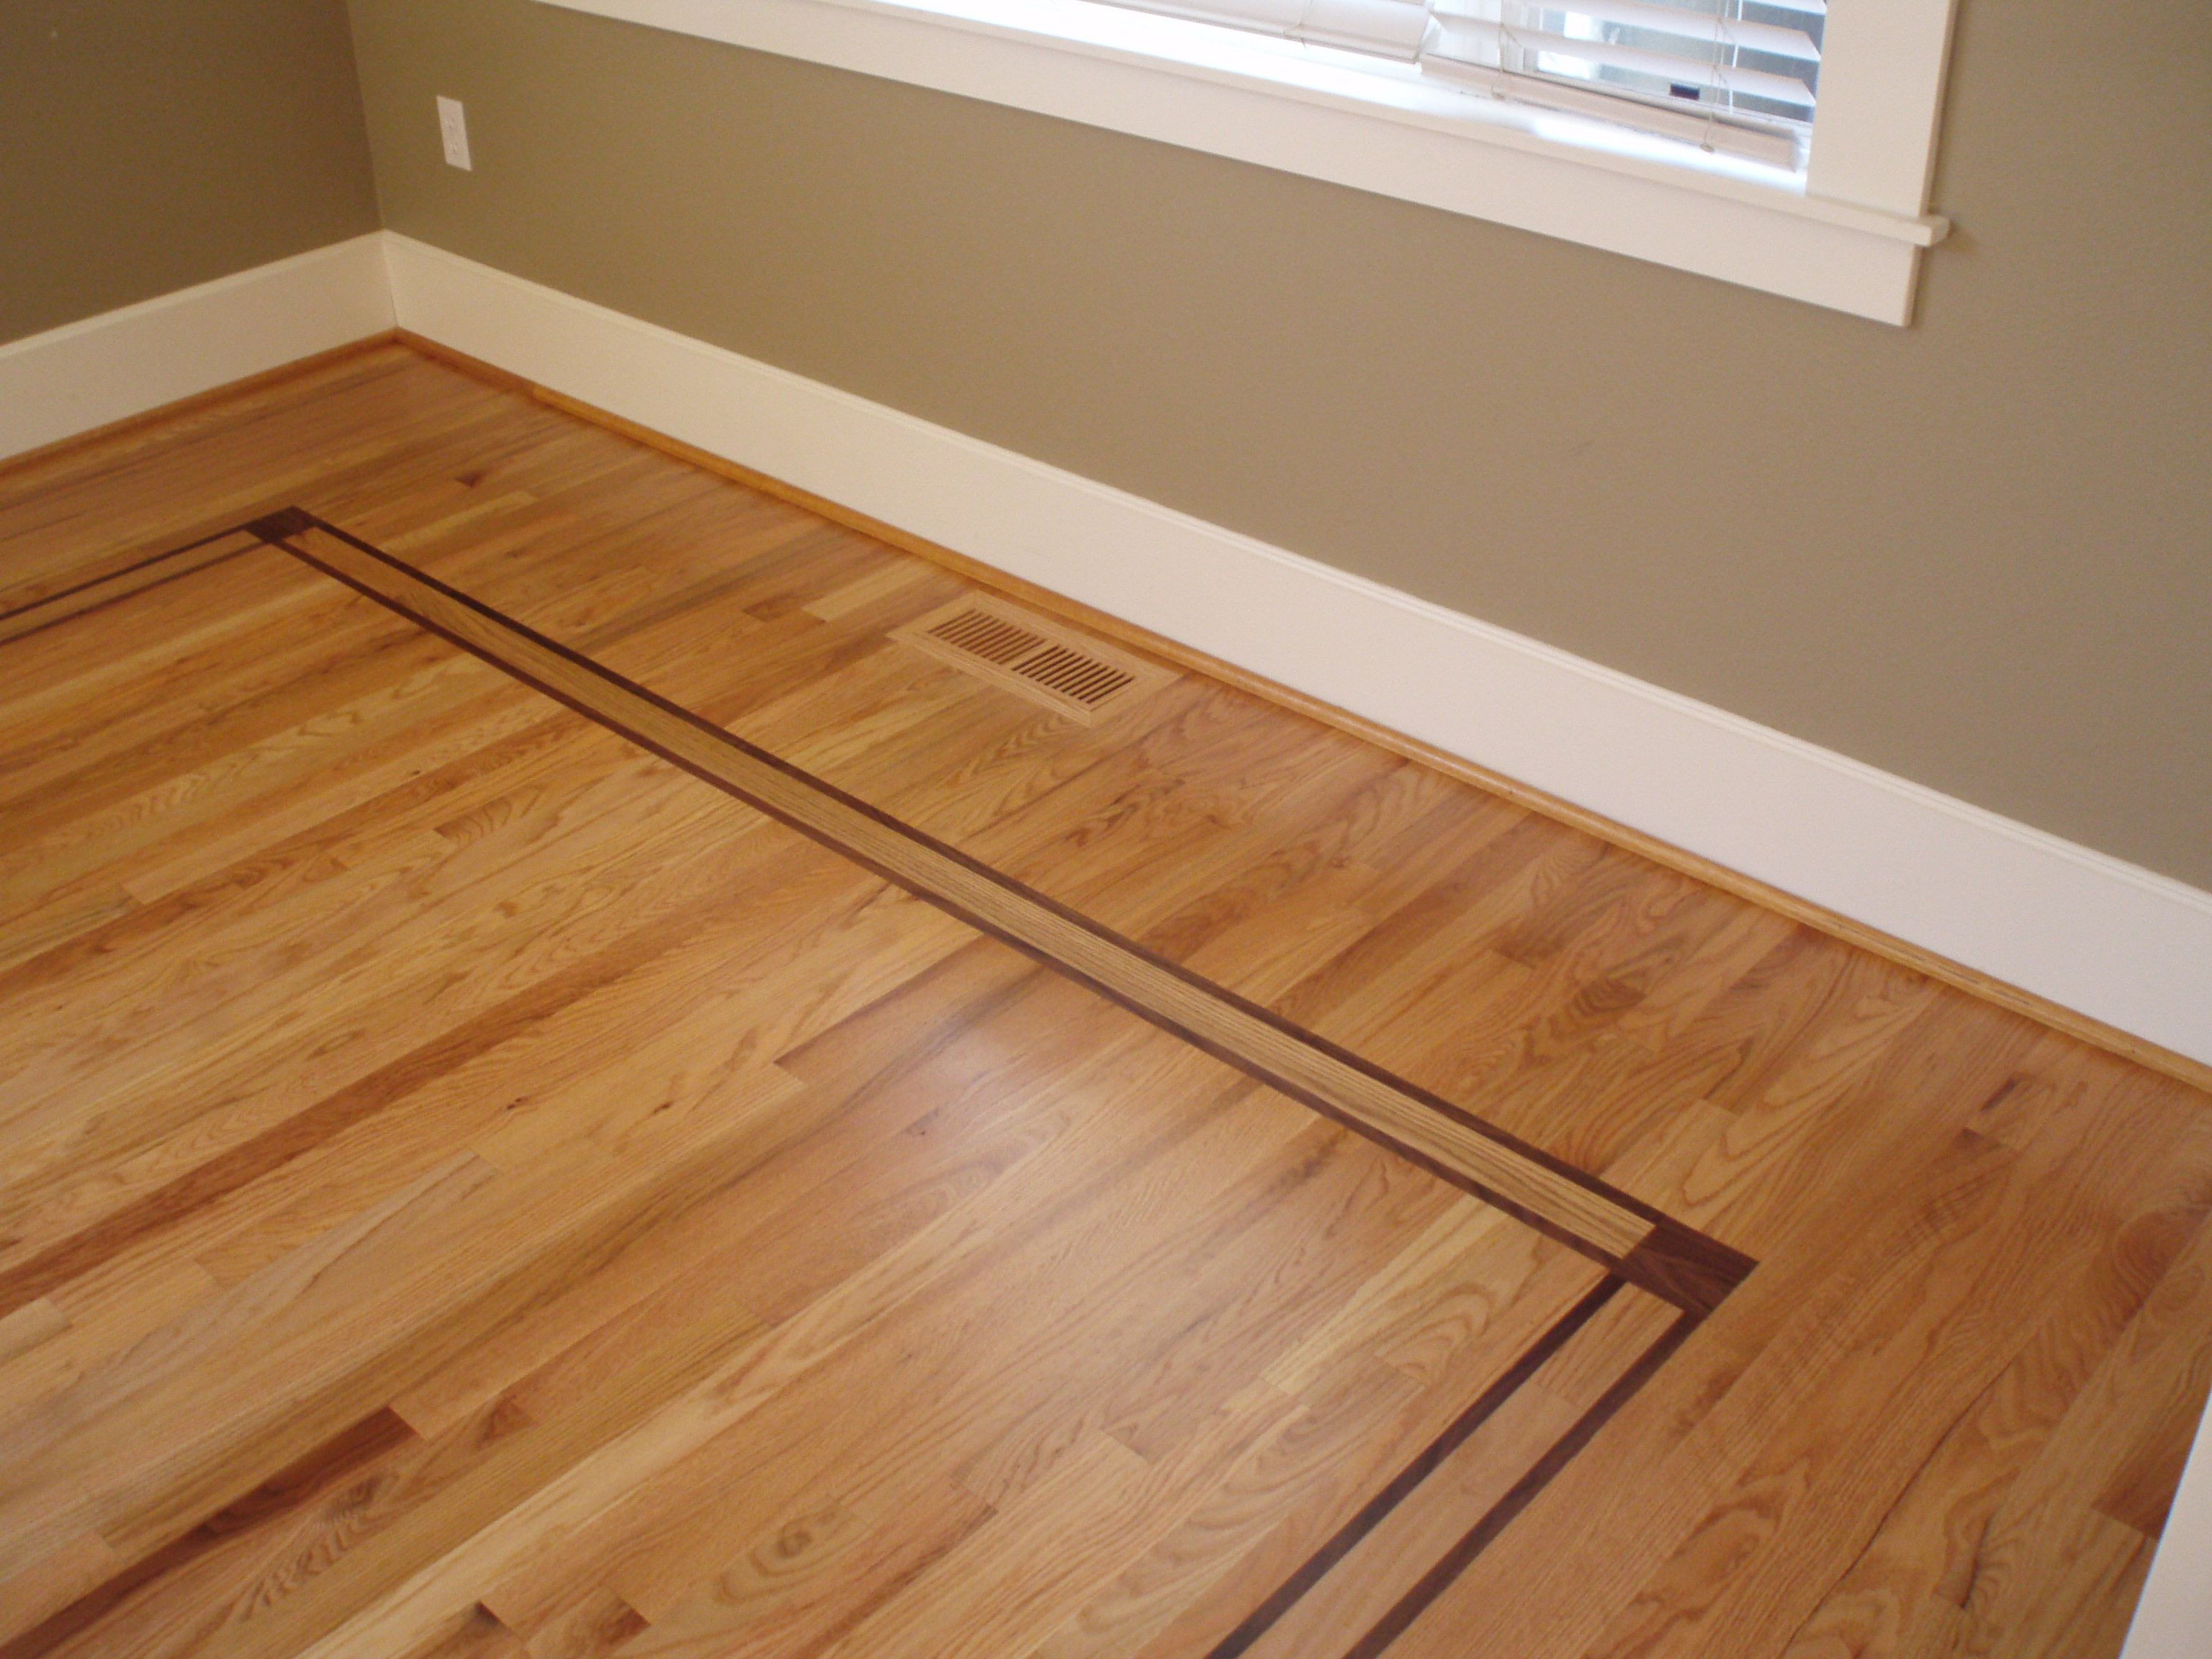 hardwood floor refinishing nashville of inlay of walnut with red oak flooring www dominohardwoodfloors com with inlay of walnut with red oak flooring www dominohardwoodfloors com portland or domino hardwood floors inc